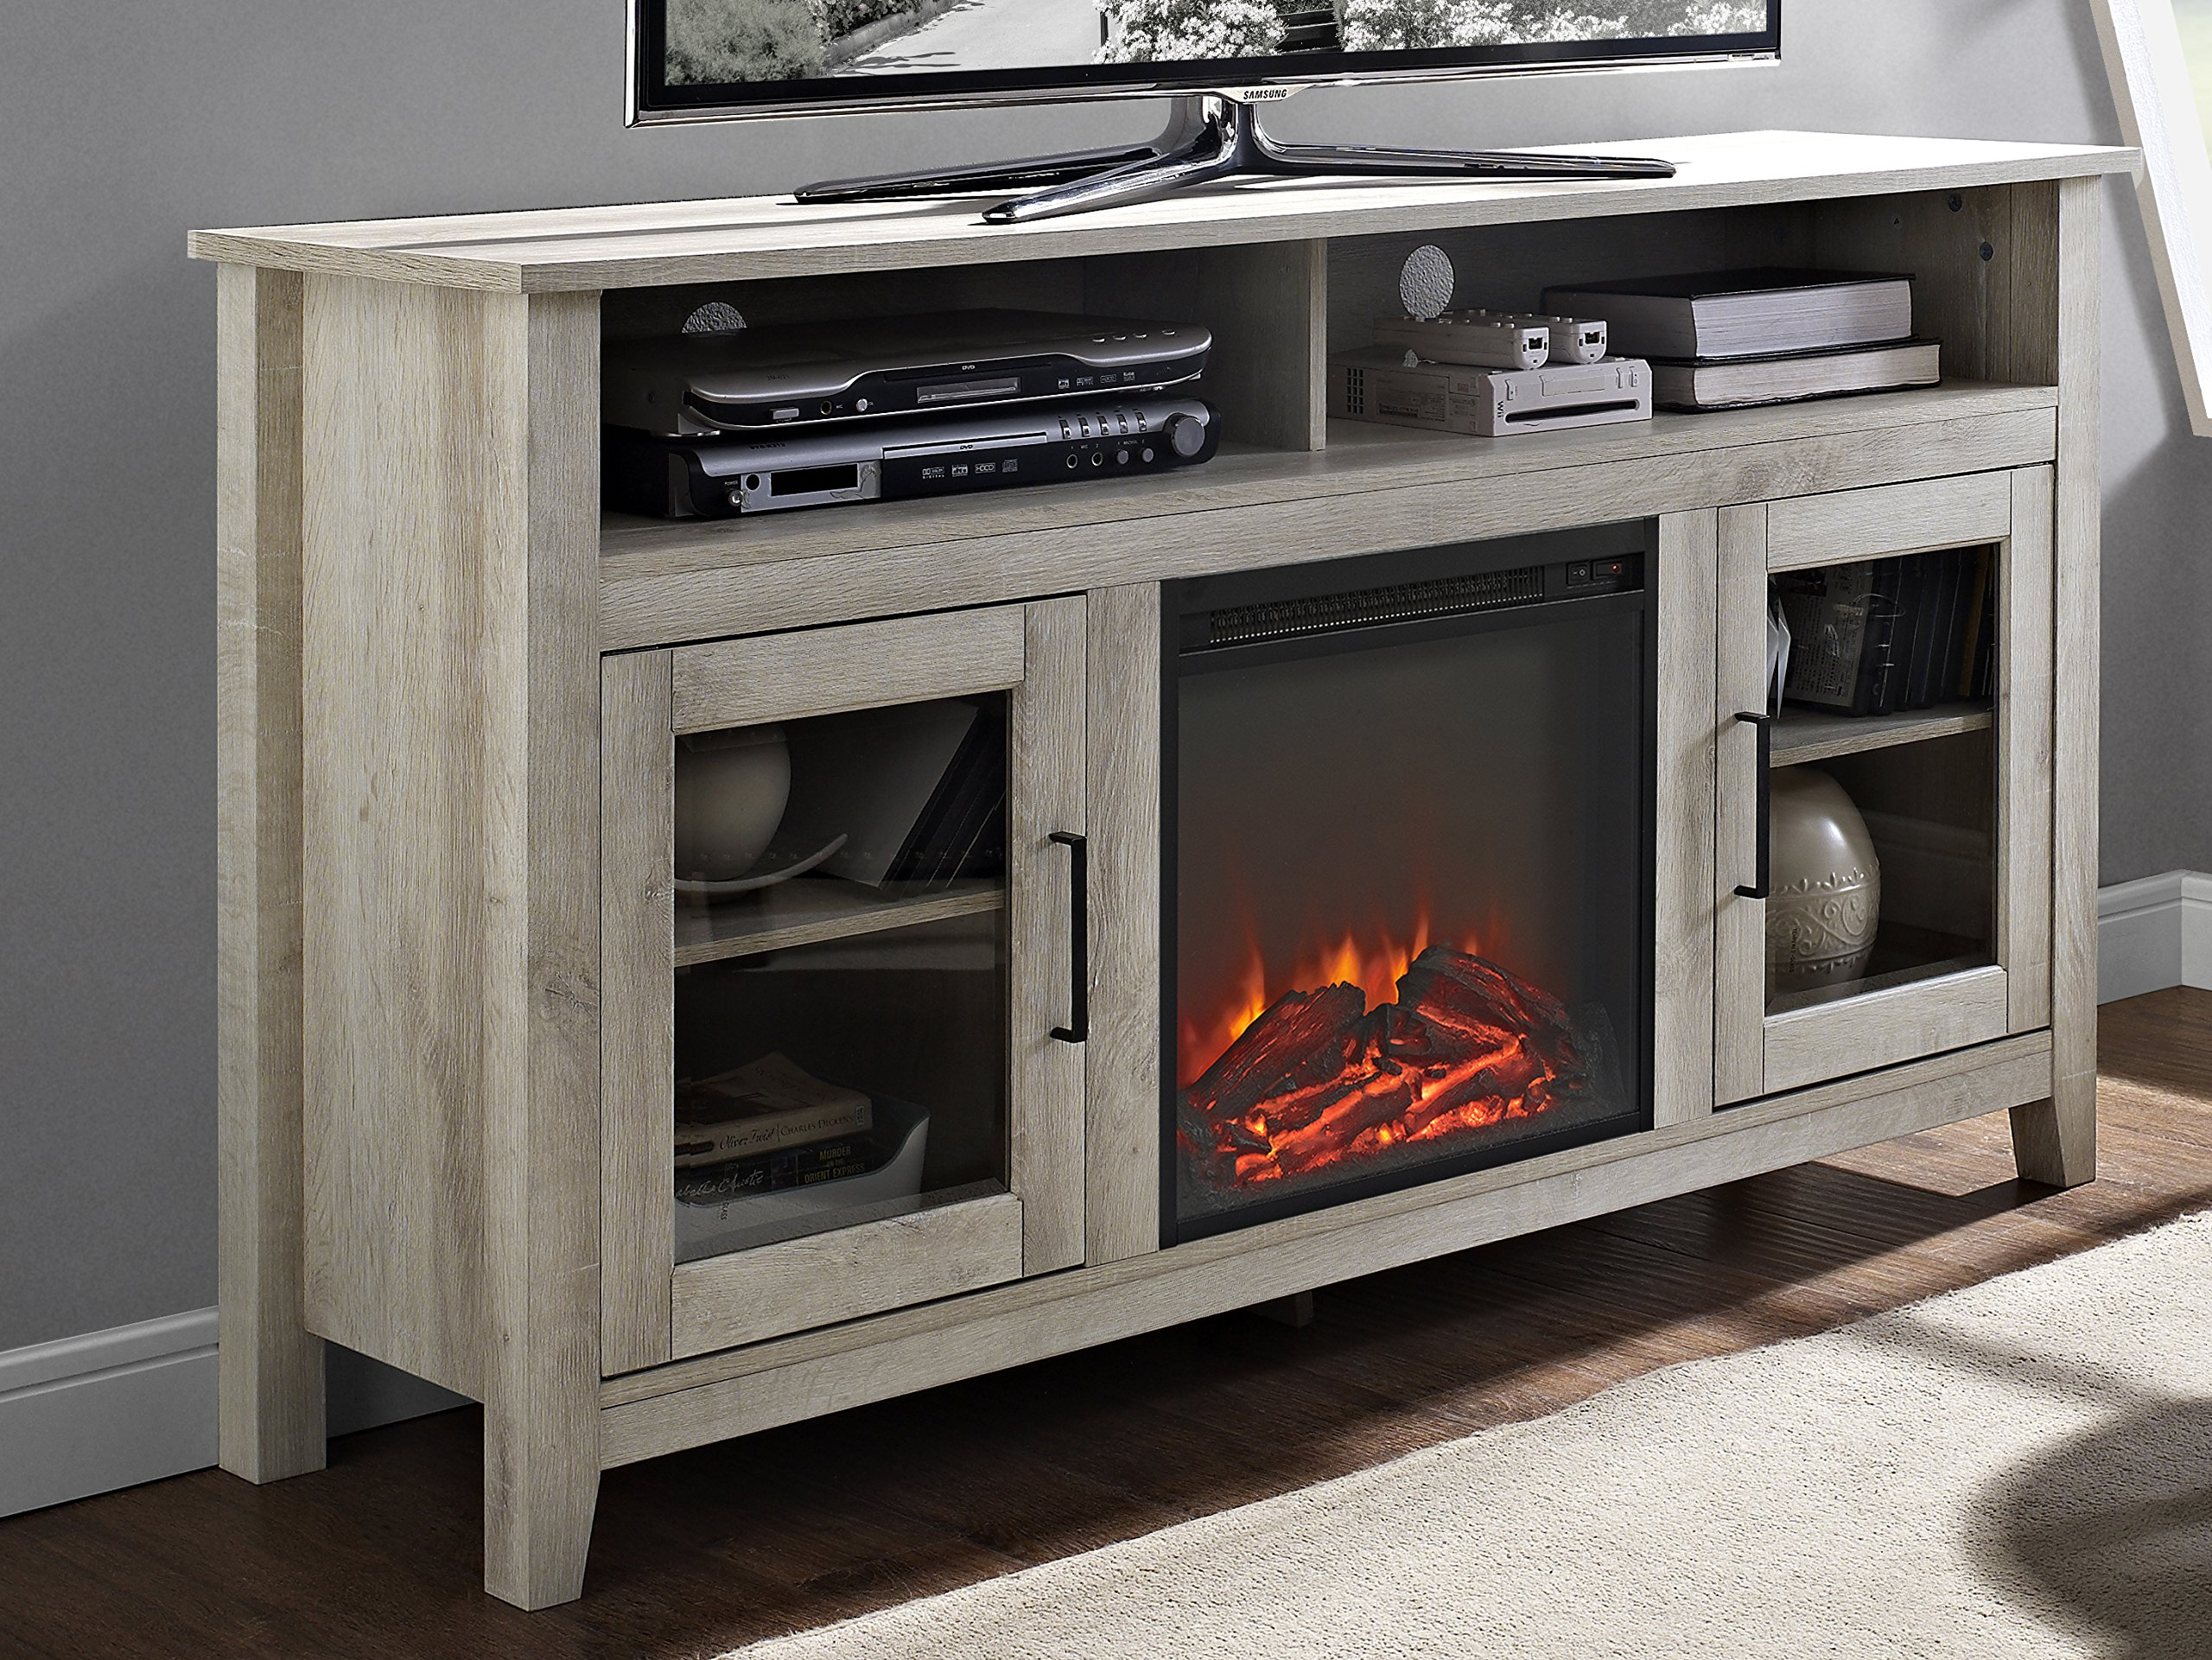 WE Furniture 58'' Wood Highboy Fireplace Media TV Stand Console - White Oak